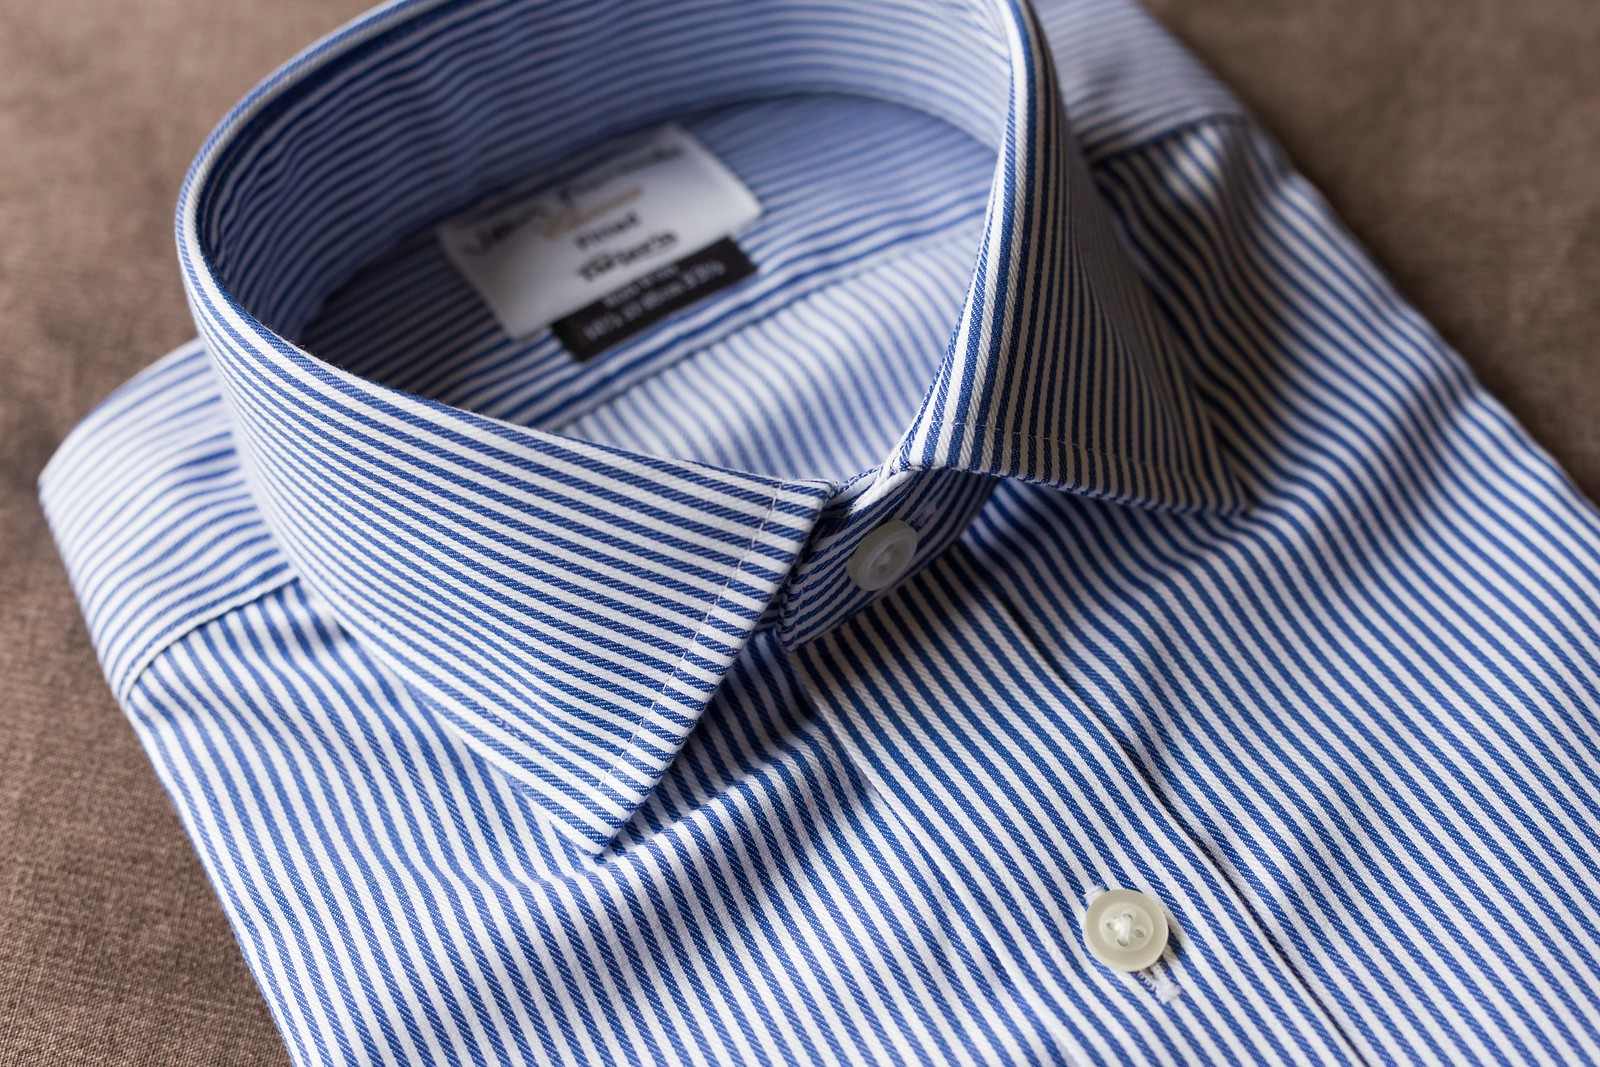 T.M.Lewin Non-Iron Shirts